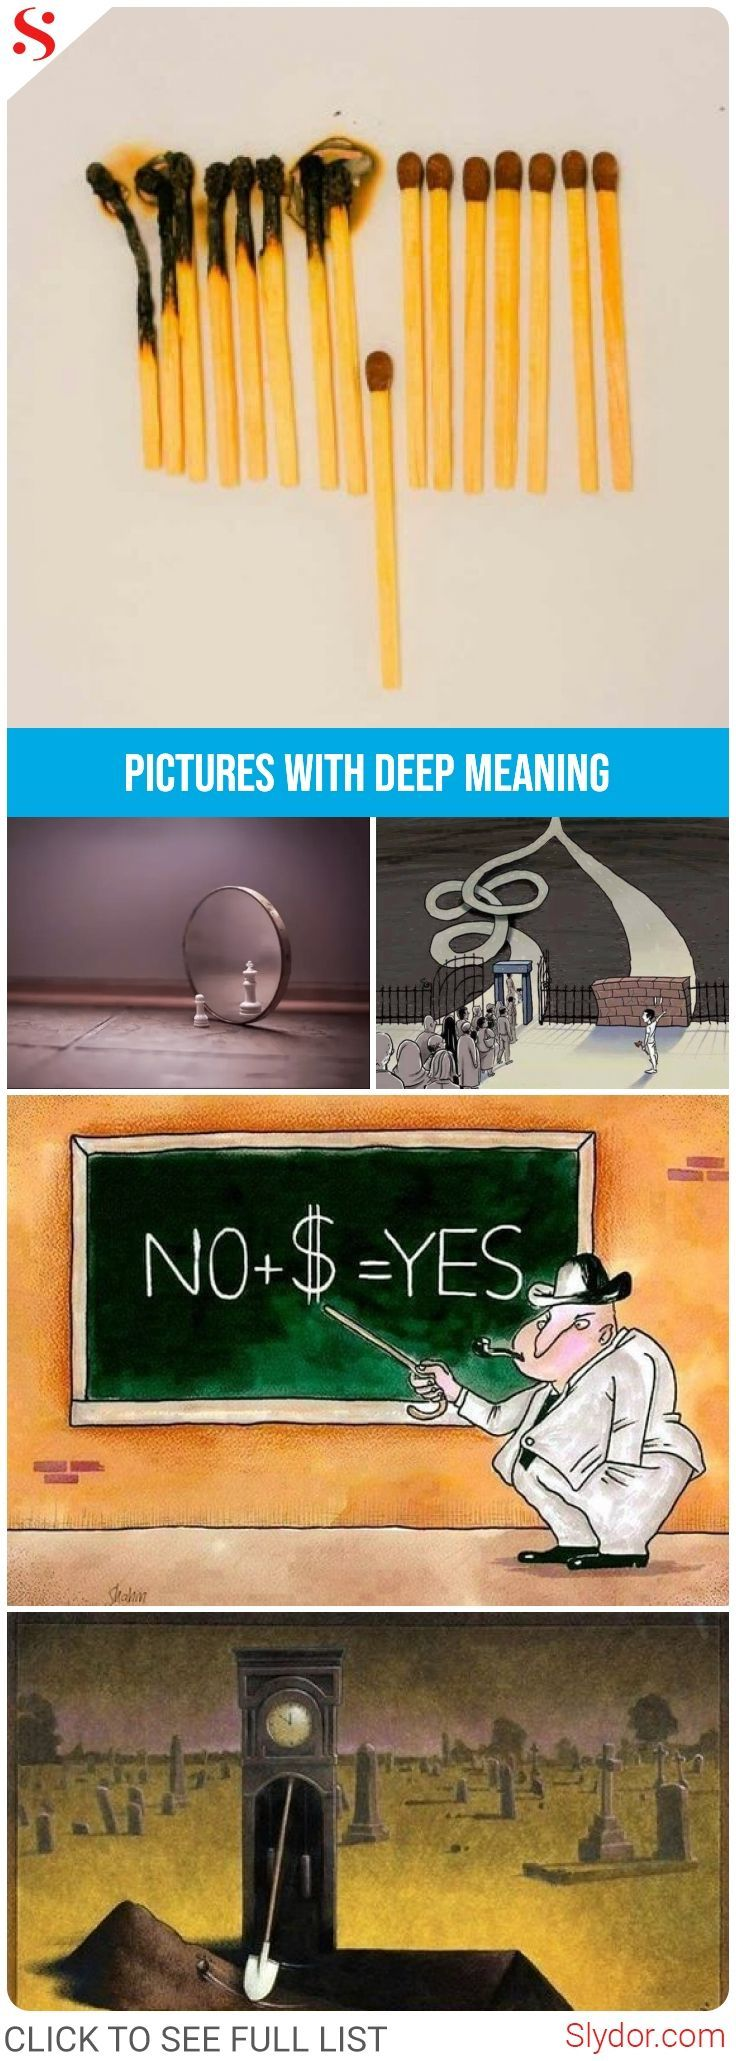 10 Pictures With Deep Meaning Part 2 Deep Deepmeaning Illustration People Living Epic Pictures With Deep Meaning Deep Images Deep Meaning